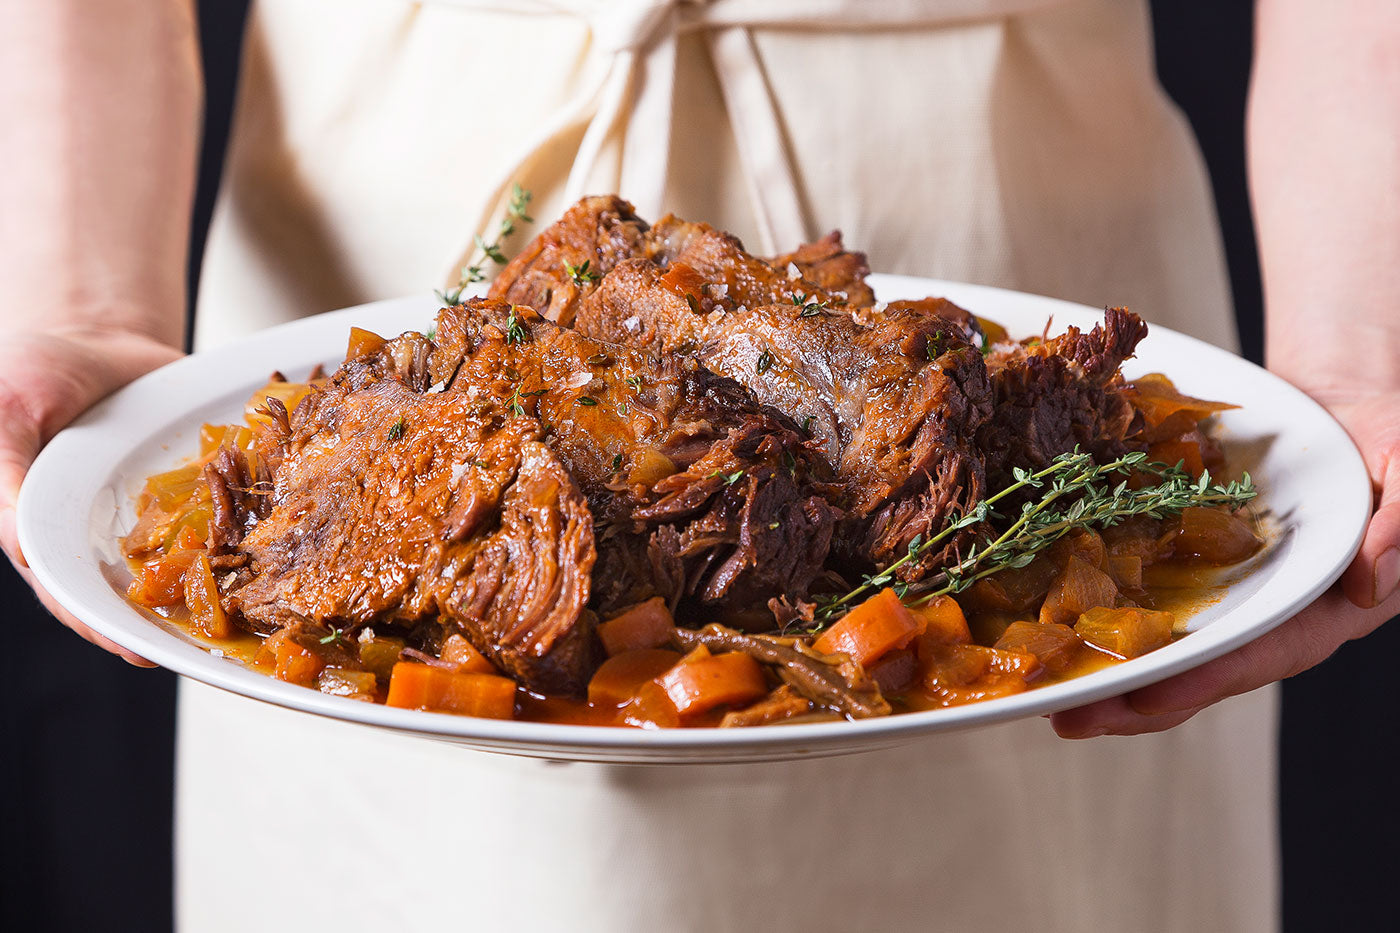 Instant Pot Roast - Cook a 4-pound roast in an hour